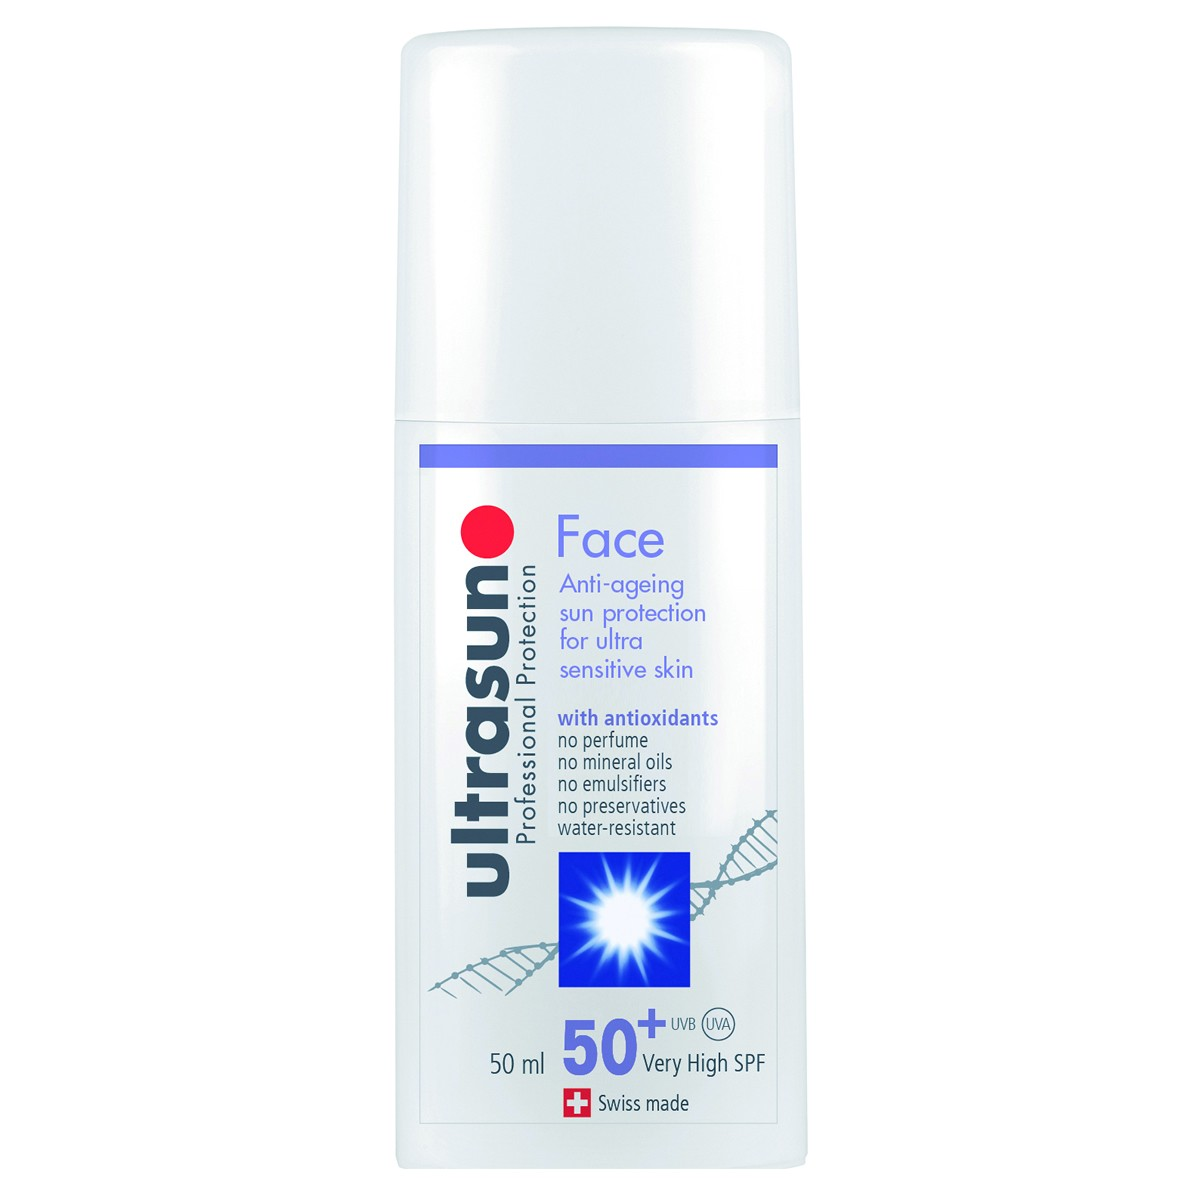 Ultrasun Face Anti-ageing Sun Protection for Ultra Sensitive Skin SPF50+